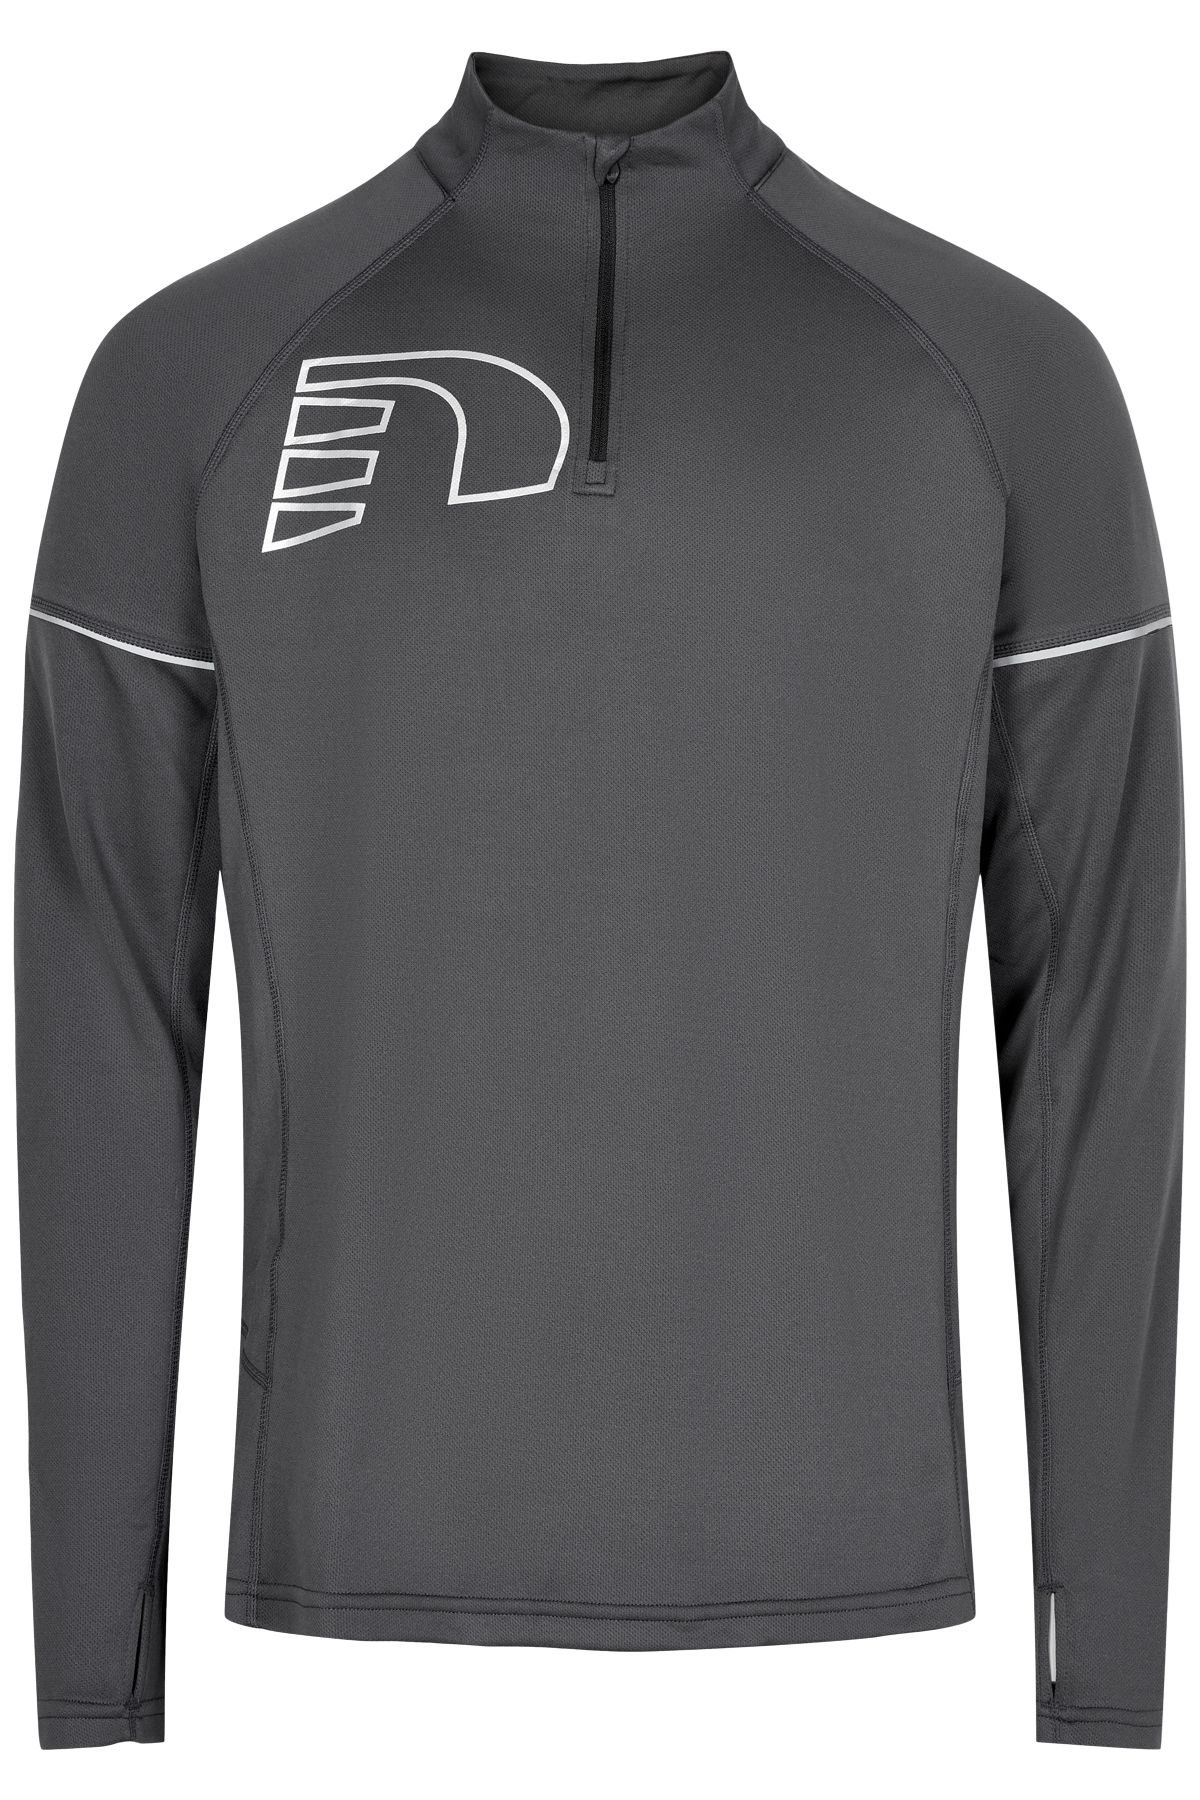 Newline Core Zip Neck Shirt (Titanium)